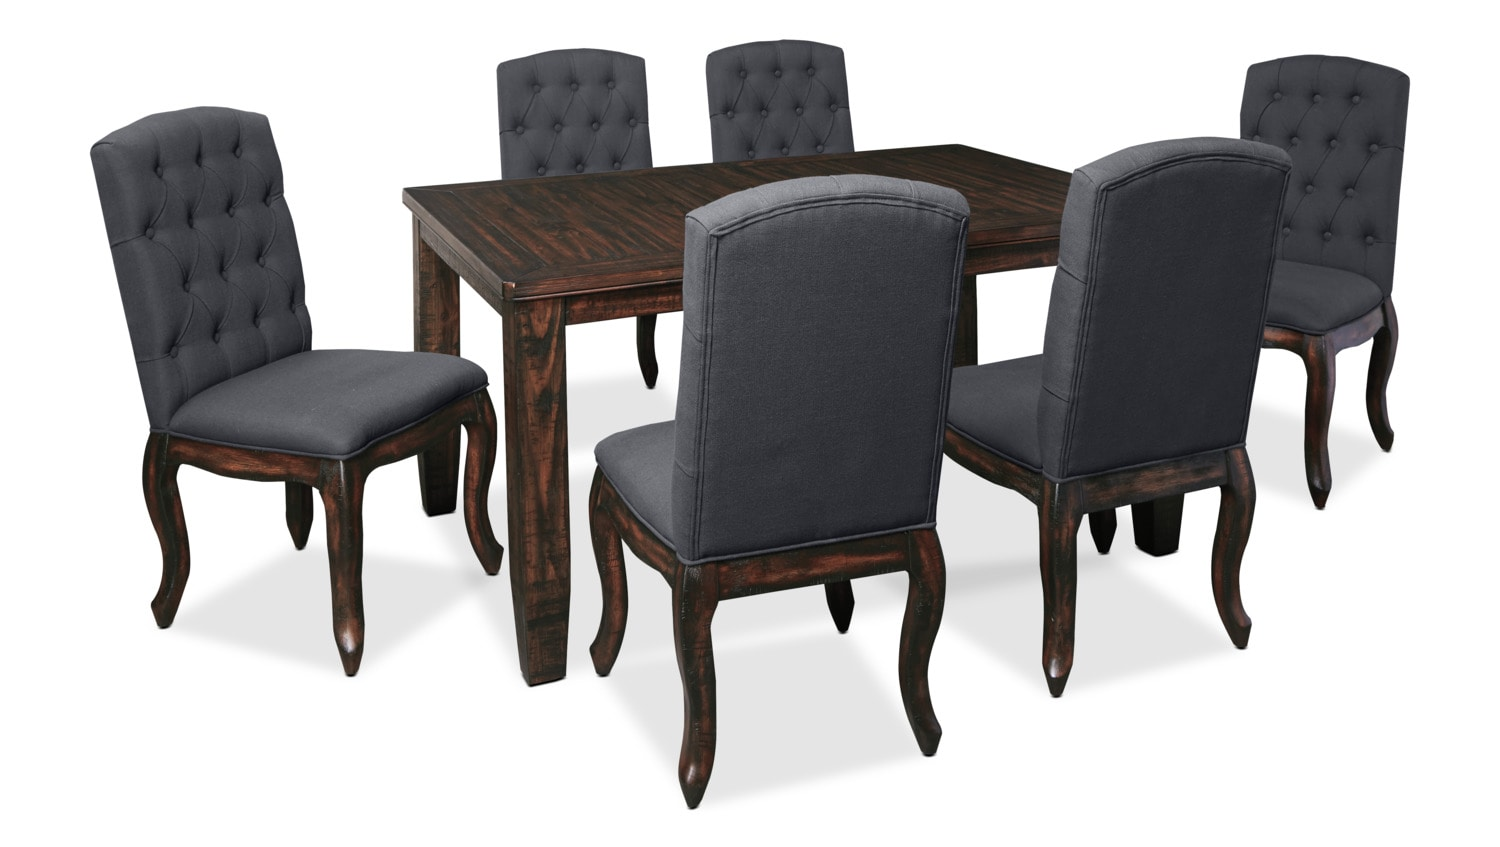 Dining Room Furniture - Trudell 7-Piece Dining Package with Upholstered Chairs